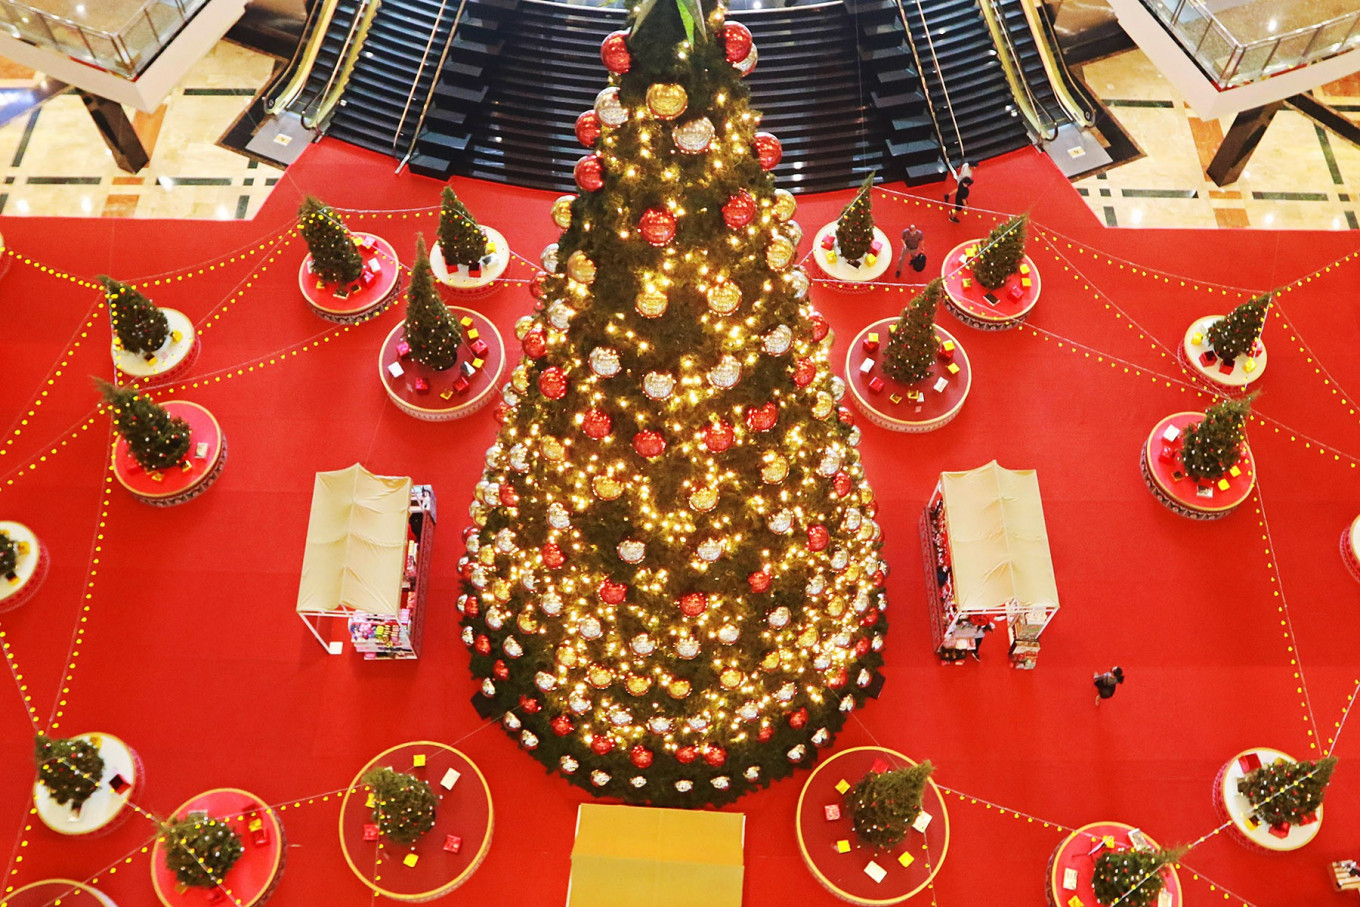 Visitors view Christmas tree decoration at the Taman Anggrek Shopping Mall in West Jakarta on Dec. 22. Several malls across the capital put up Christmas-themed decoration ahead of the holiday season. JP/Dhoni Setiawan